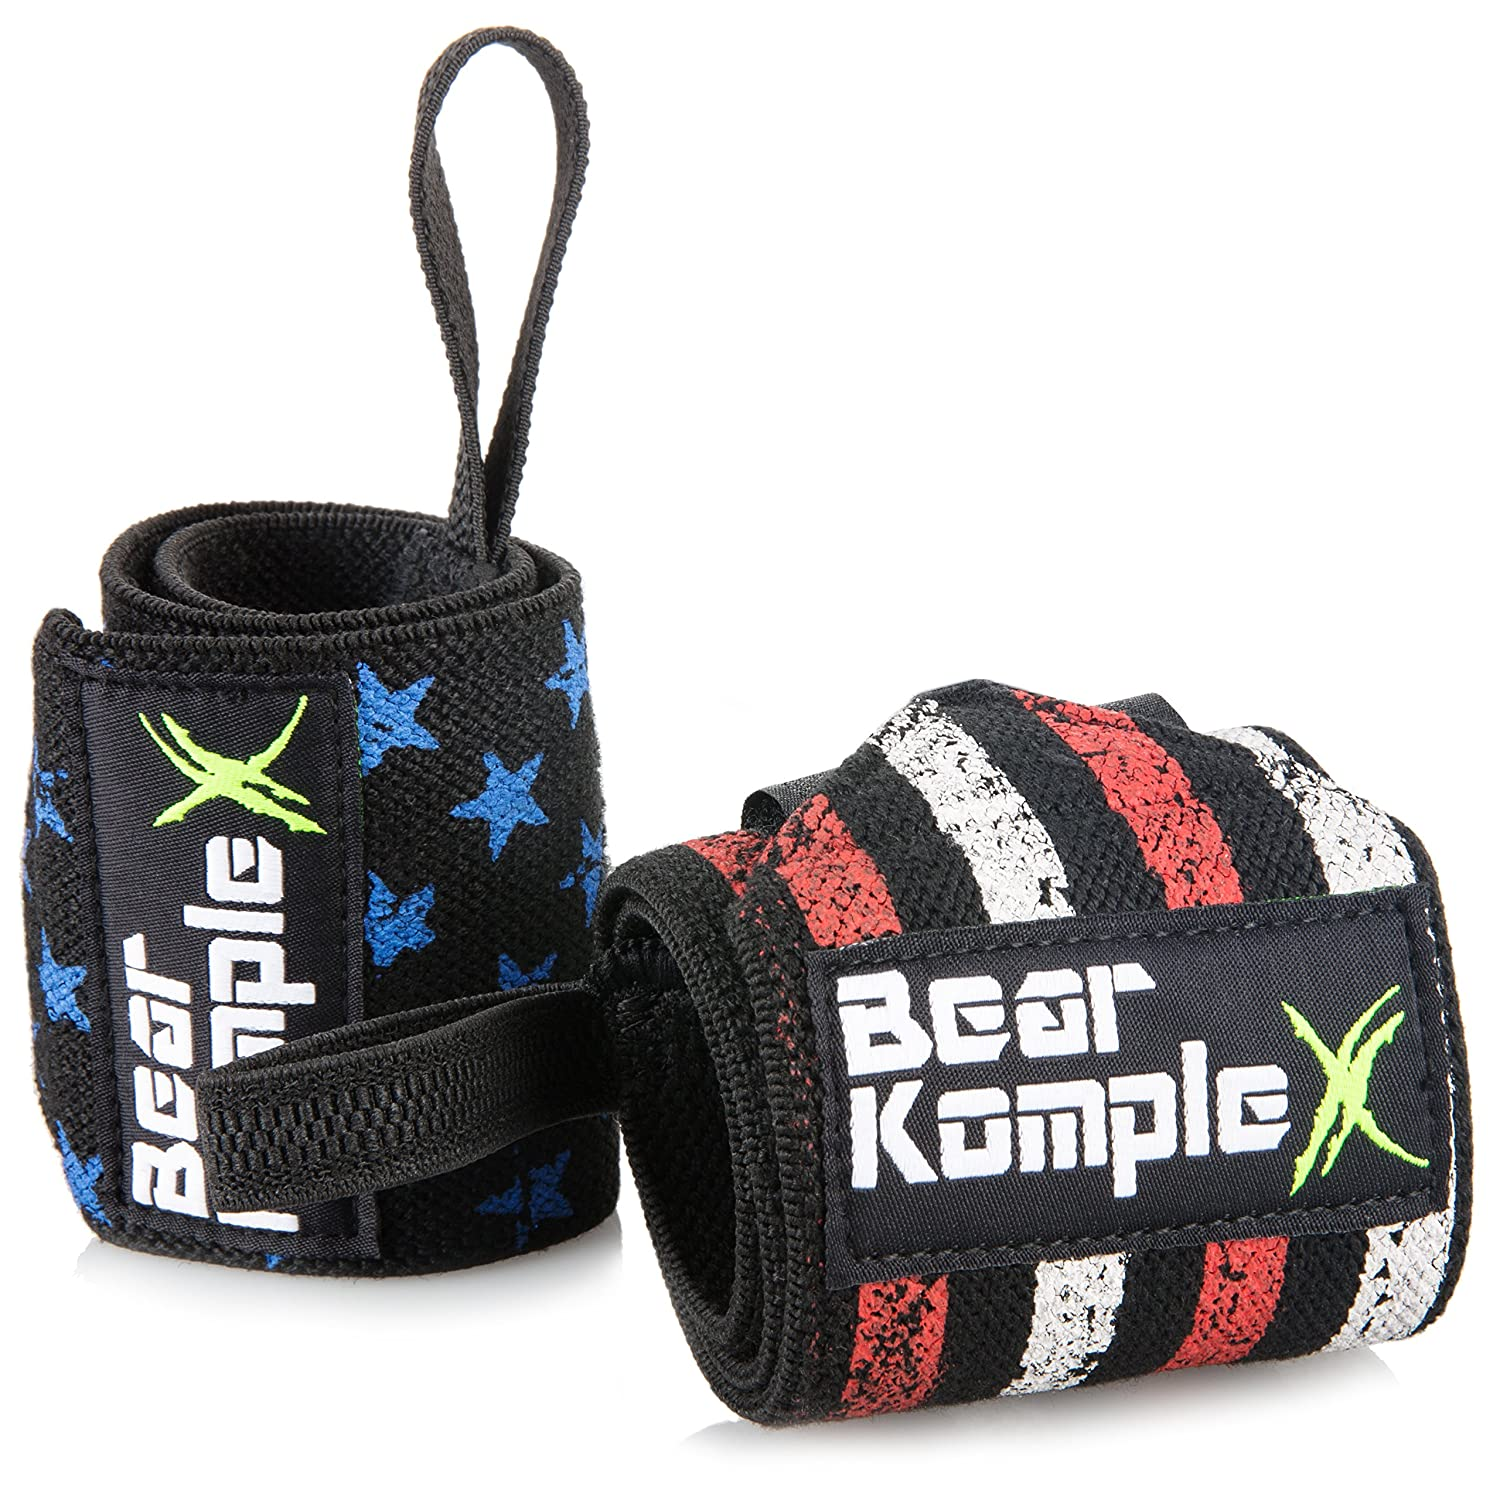 Workout Wraps for Crossfit 18 Inch Pair Power Lifting /& More Bear KompleX Wrist Support Band Wraps for Weightlifting: Stabilizer Grip for Right//Left Hand with Thumb Hooks